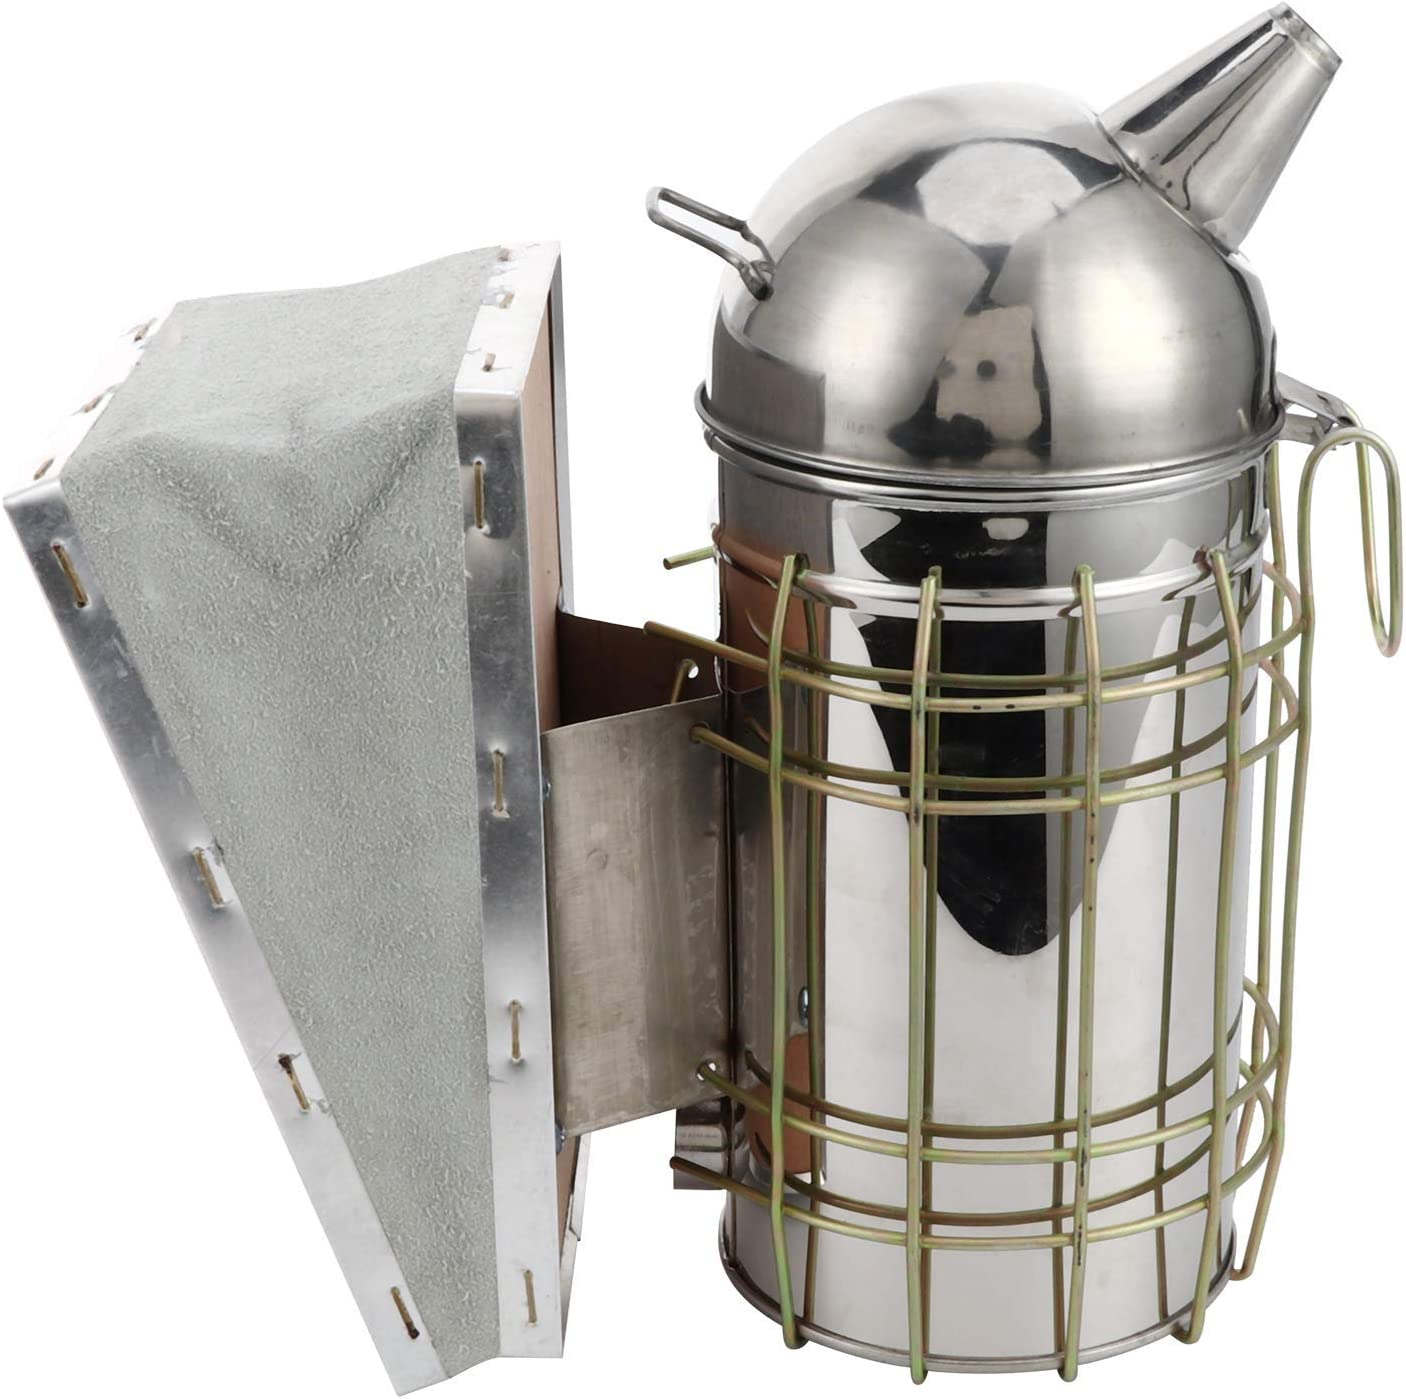 Eujgoov Bargain Bee Courier shipping free Smoker Apiculture Beekeeping Stainle Tool